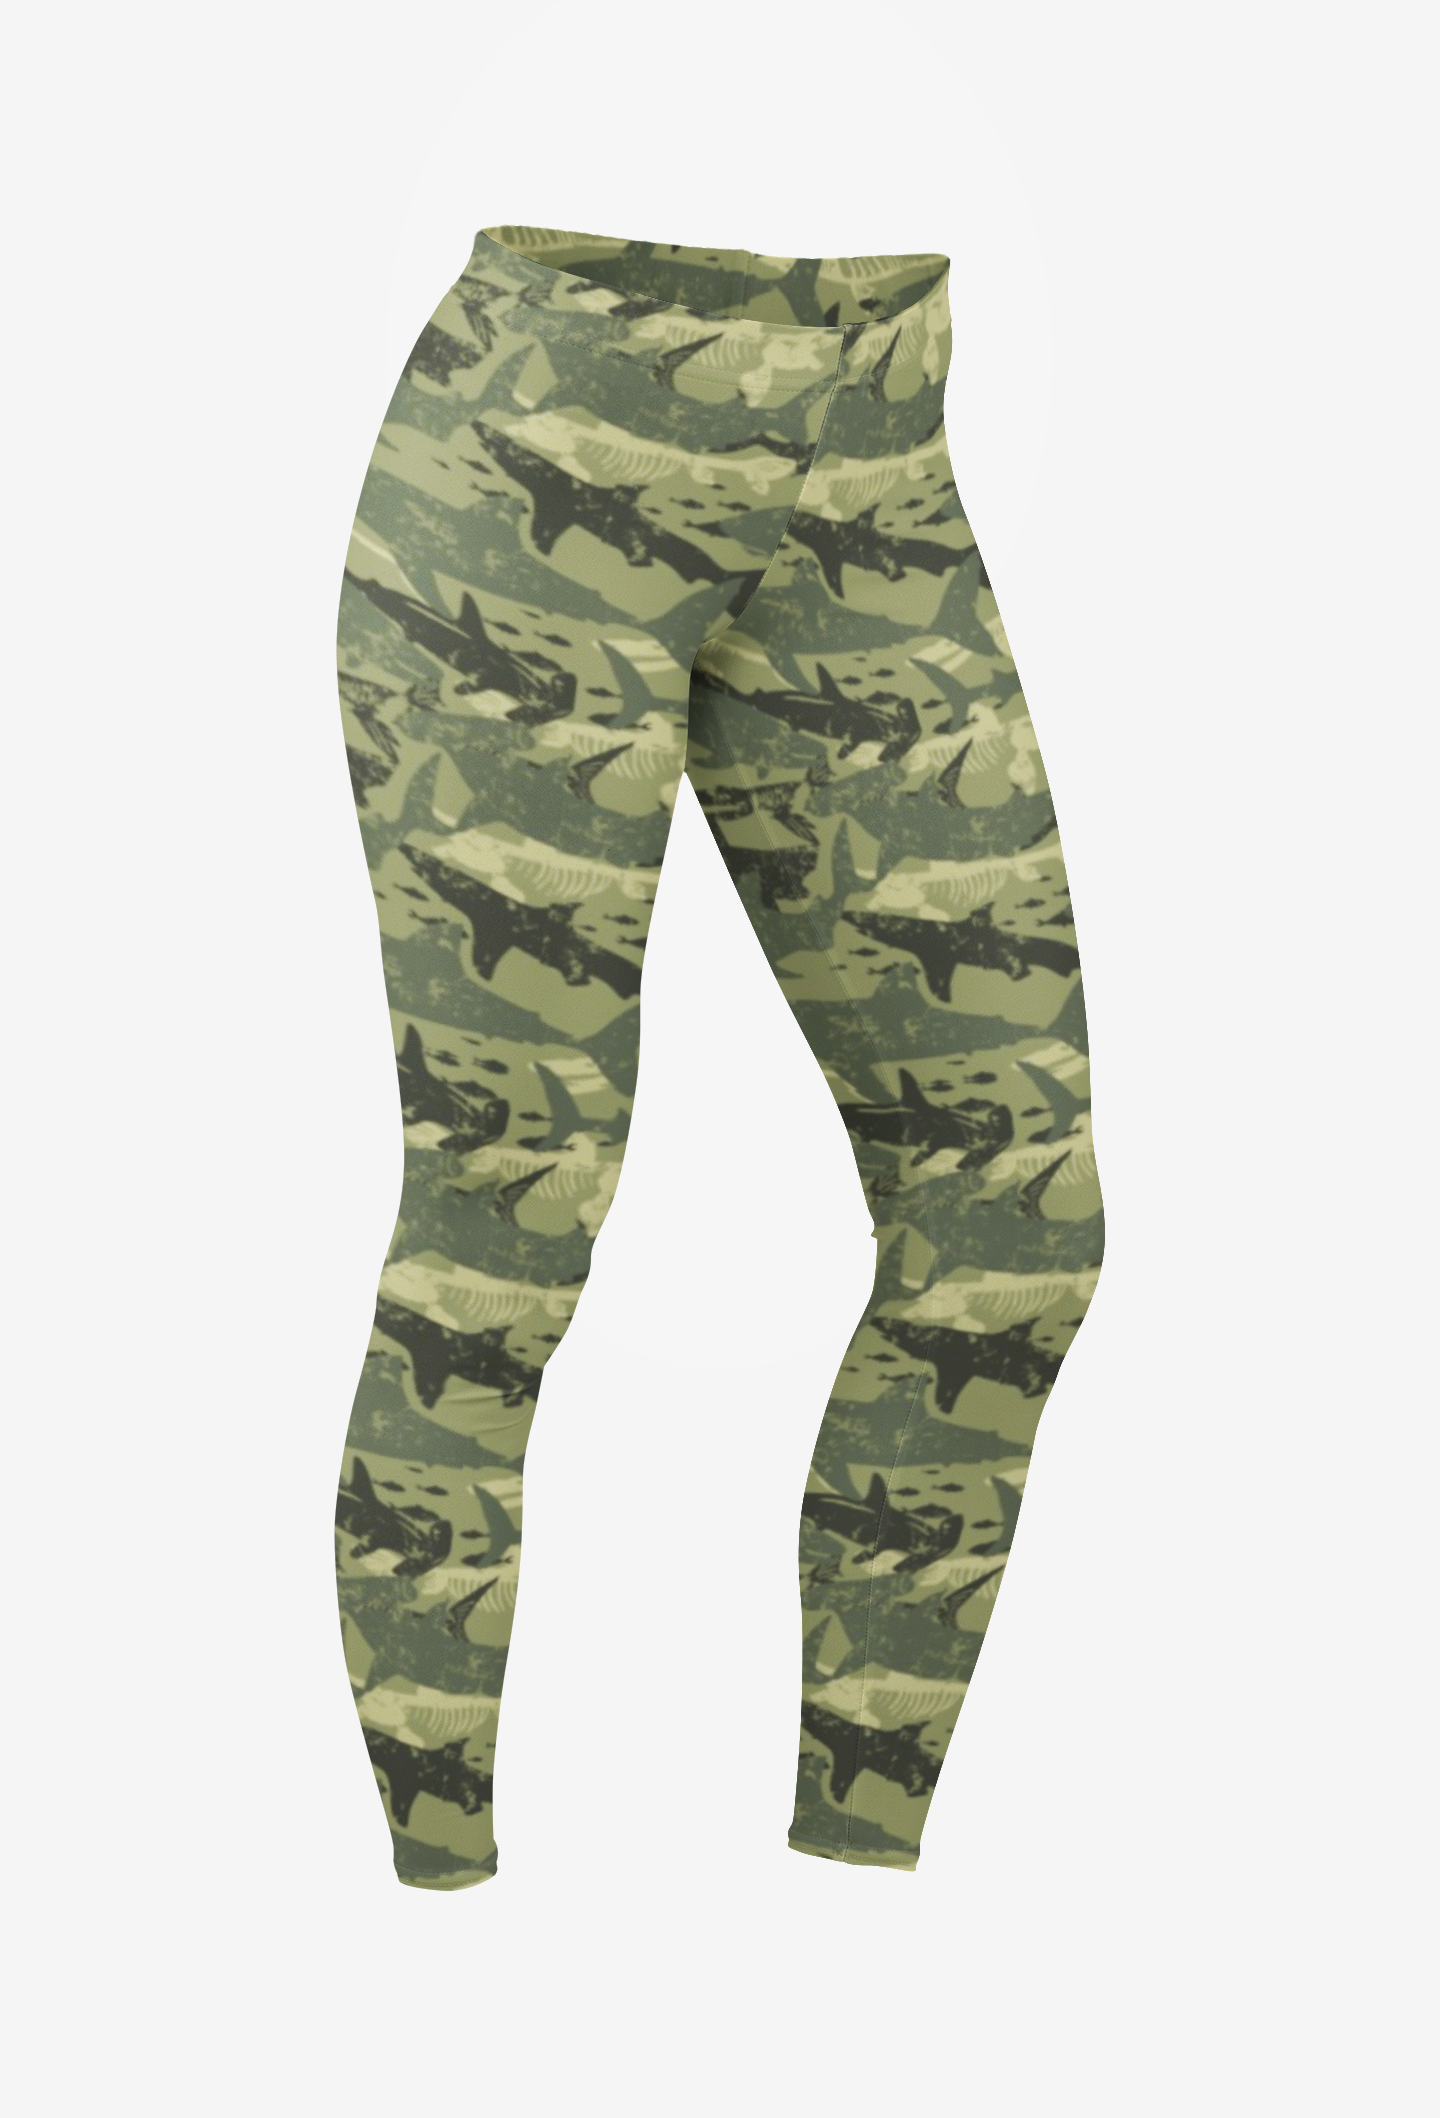 Green Camo Shark Leggings